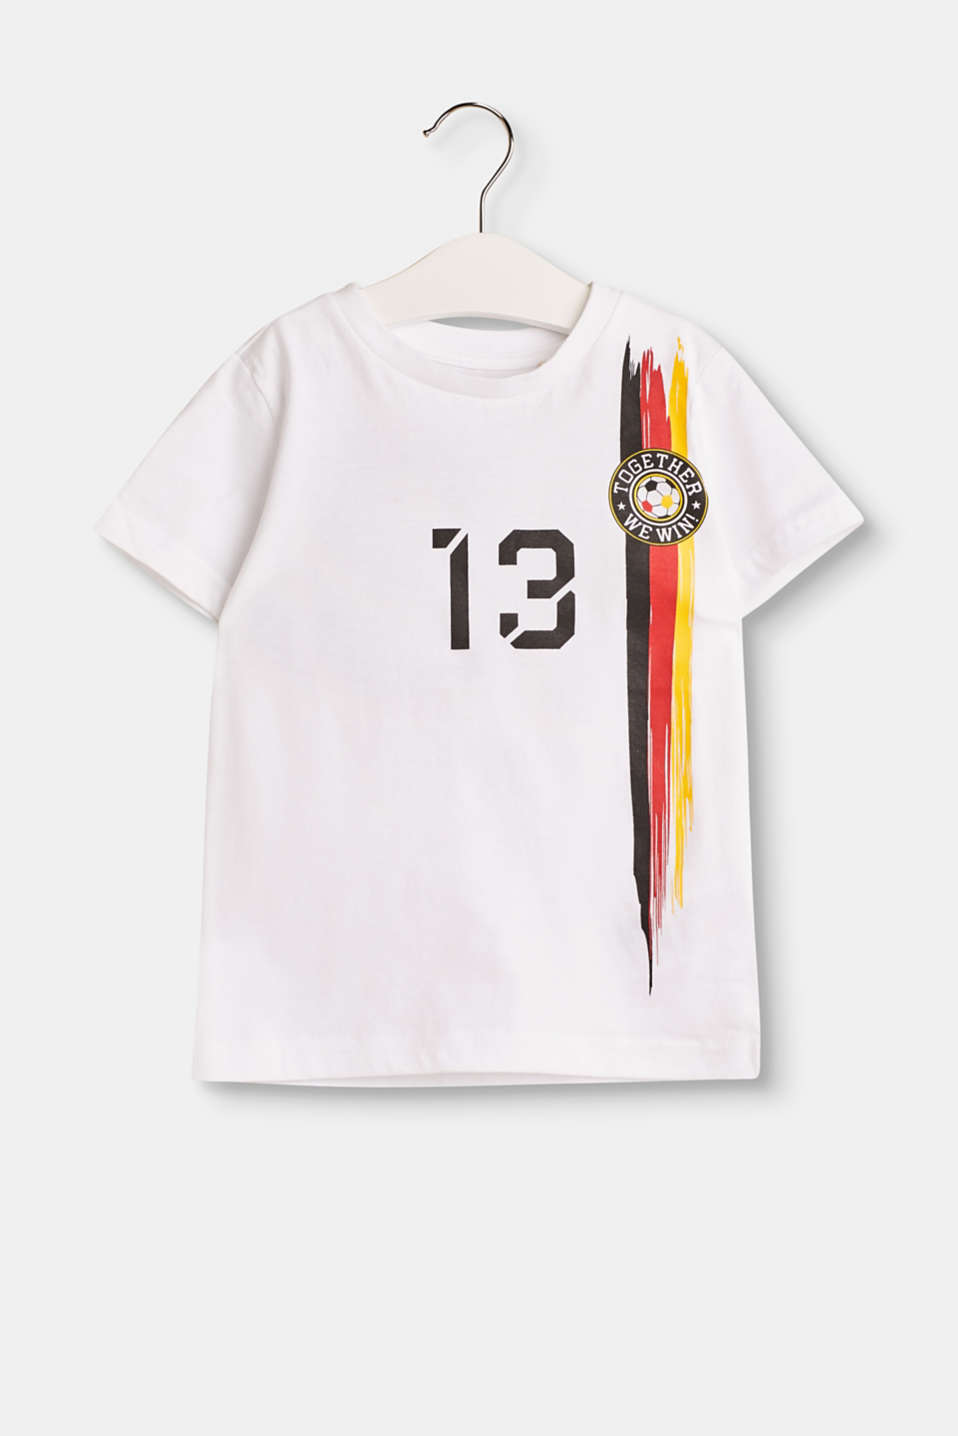 Esprit - Kids football shirt in 100% cotton